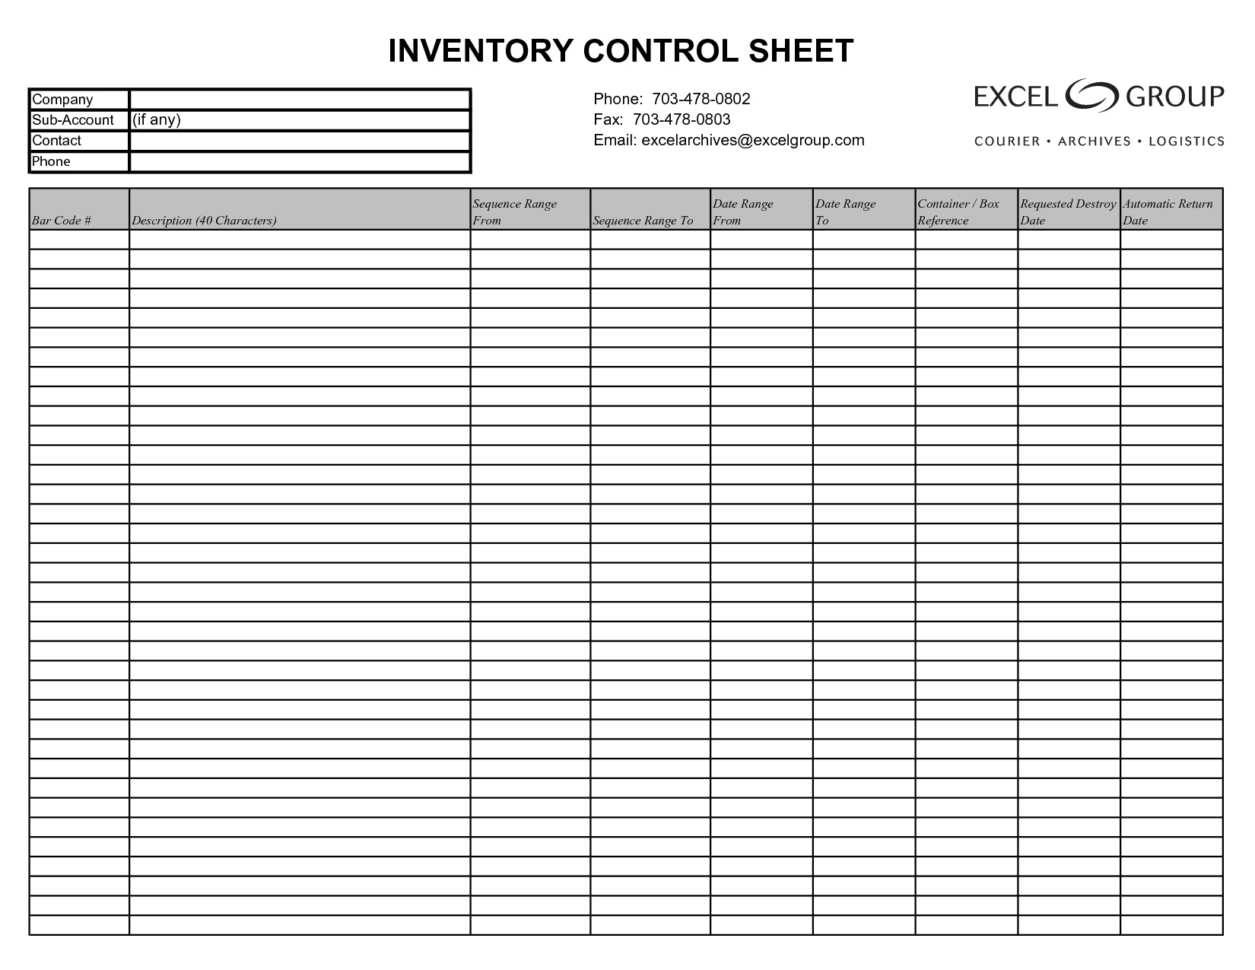 Inventory Spreadsheet Template Excel Product Tracking | My In Inventory Spreadsheet Templates